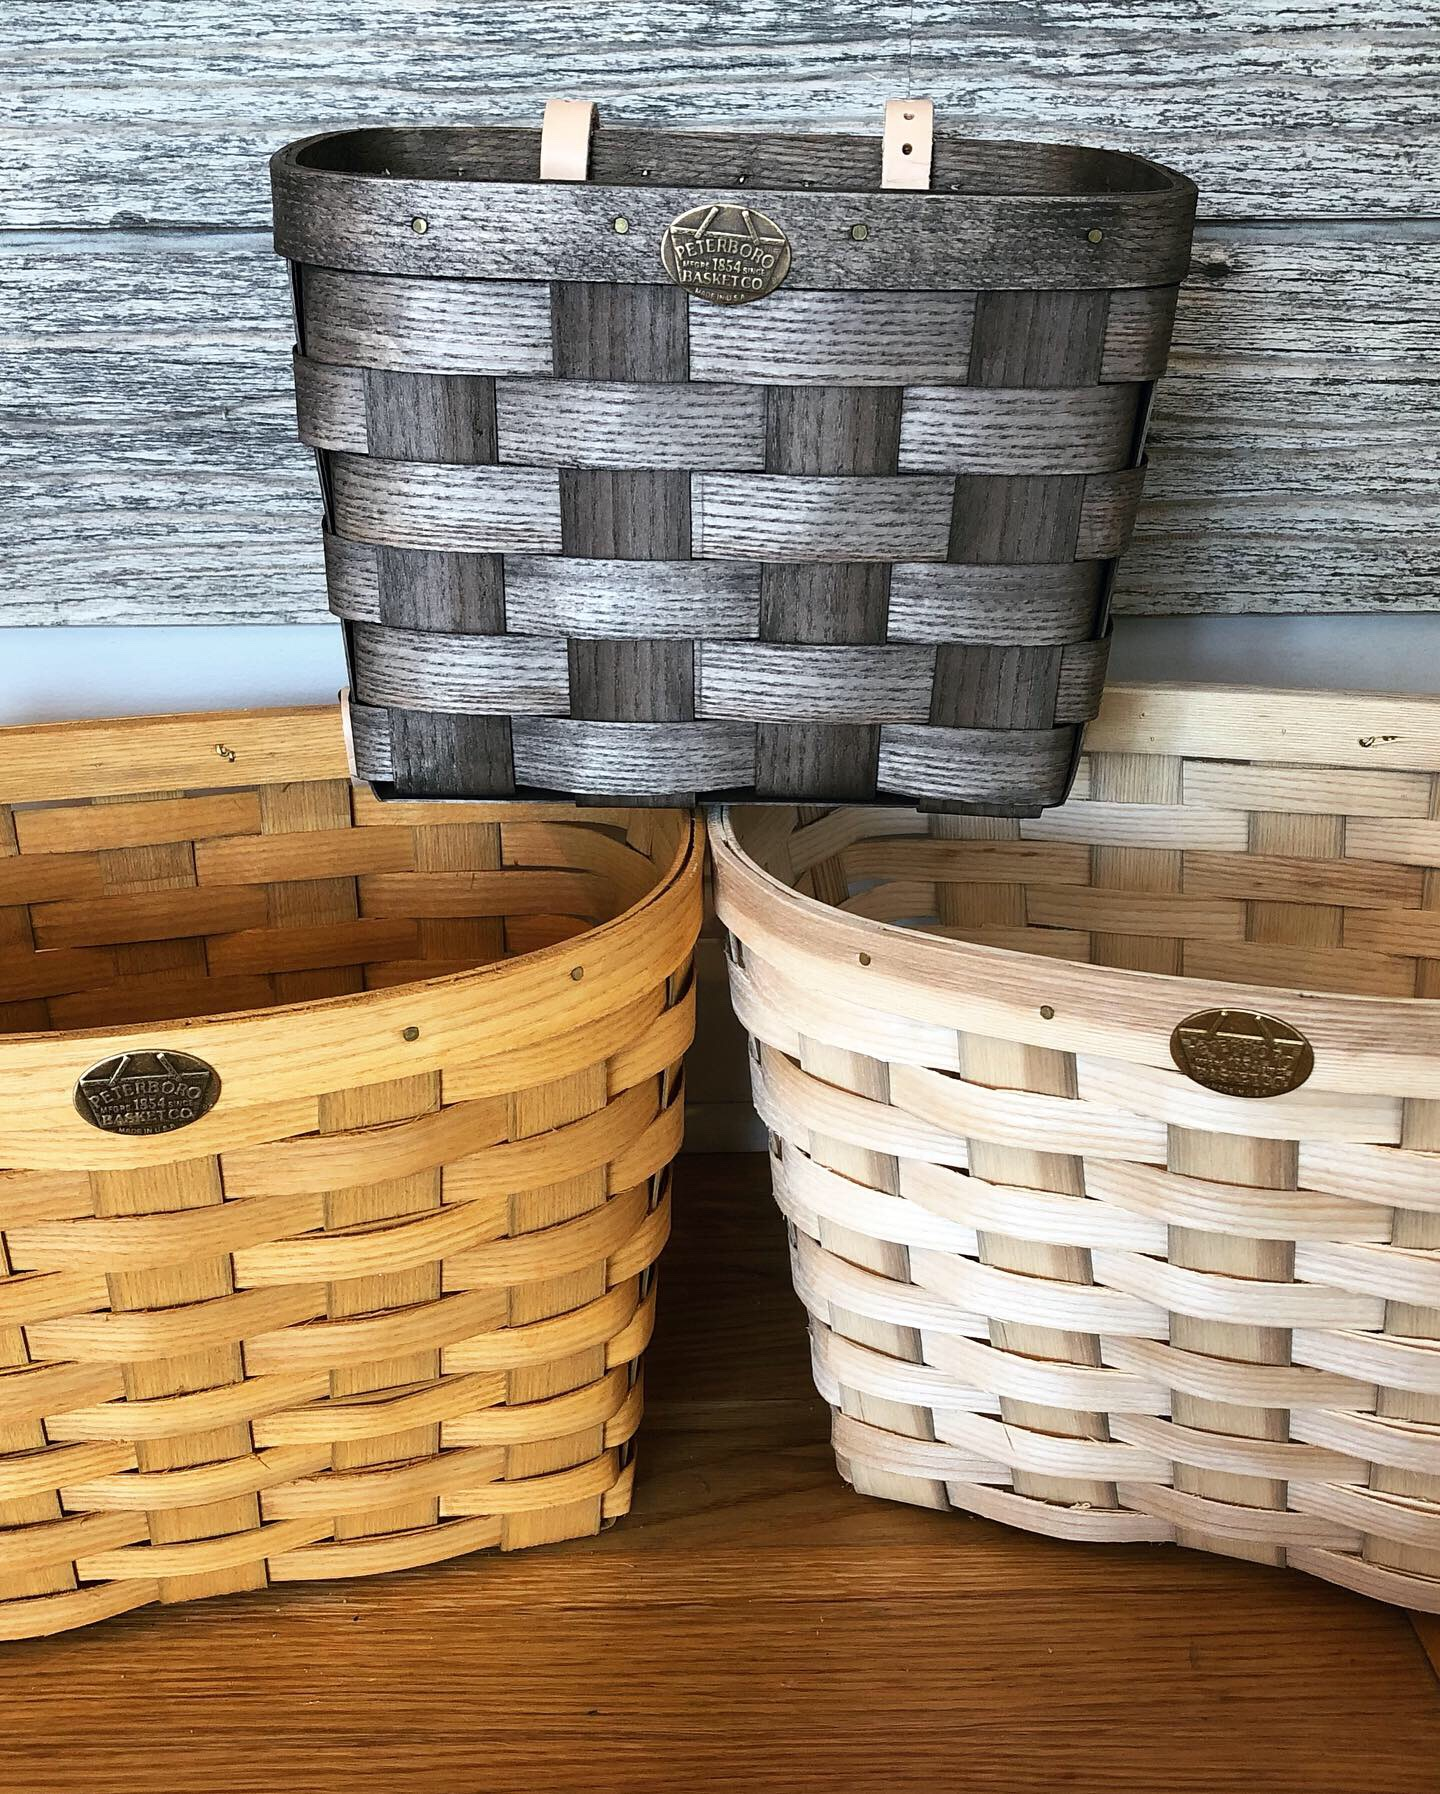 Peterboro Baskets handcrafted in New Hampshire from Appalachian white ash